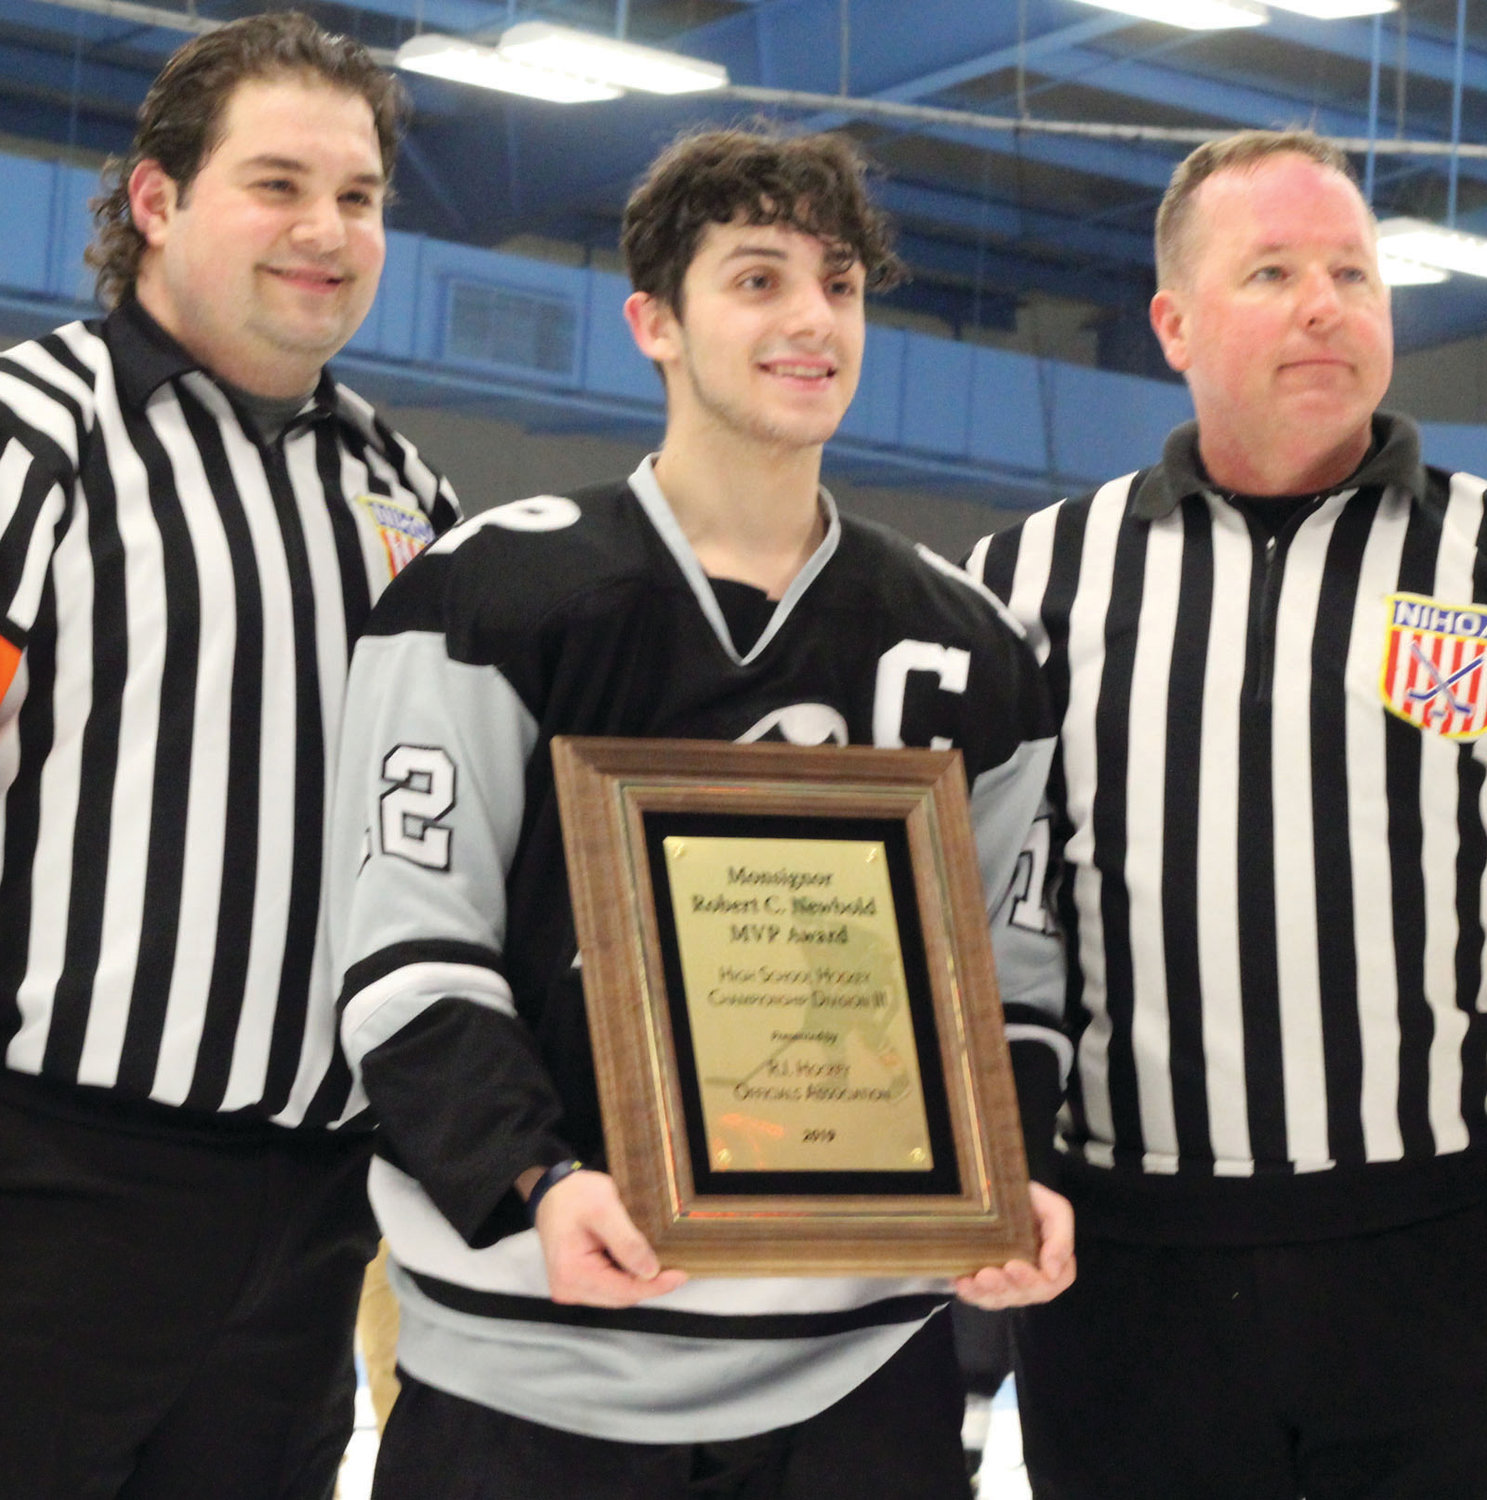 MVP: Pilgrim senior forward Matt Pacheco is presented the Reverend Msgr. Robert C. Newbold Award, given to the most valuable player of the Division III Boys Hockey Championship. Pacheco recorded a goal and an assist in both Games 1 and 2 of the series.